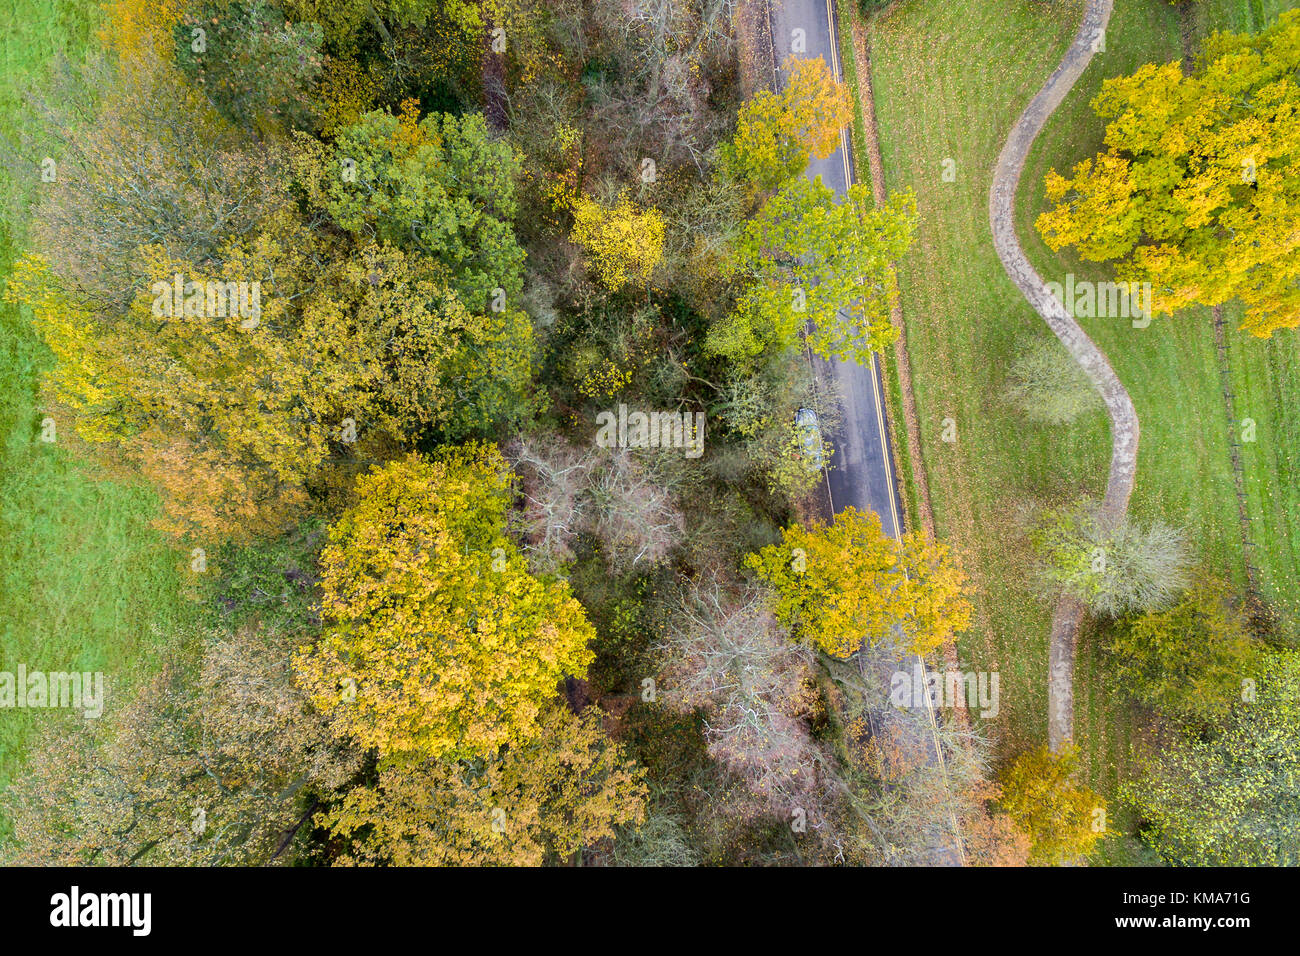 looking down on autumn colours in a UK country park - Stock Image